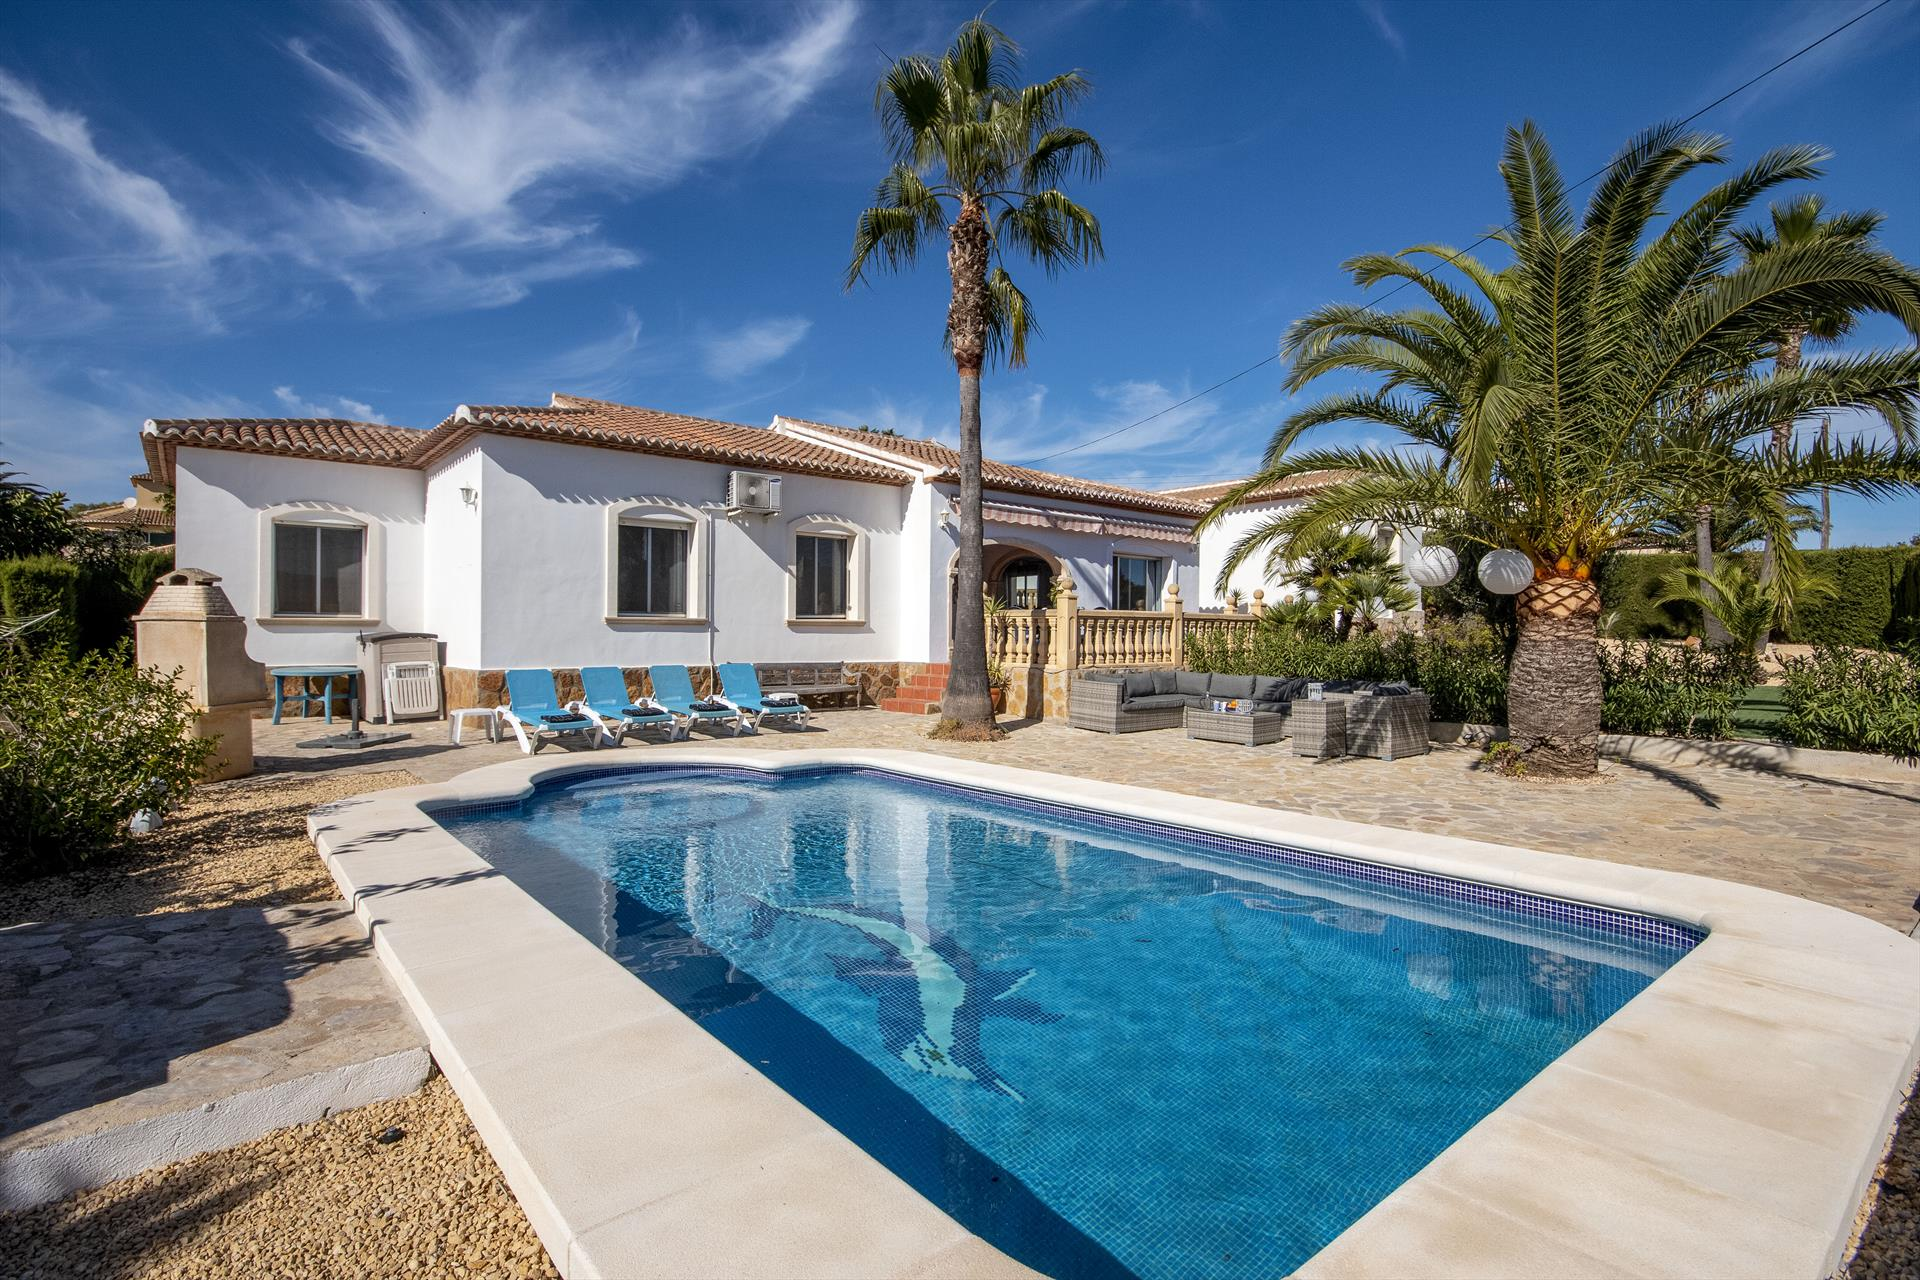 Robinho, Wonderful and comfortable villa  with private pool in Javea, on the Costa Blanca, Spain for 6 persons.....